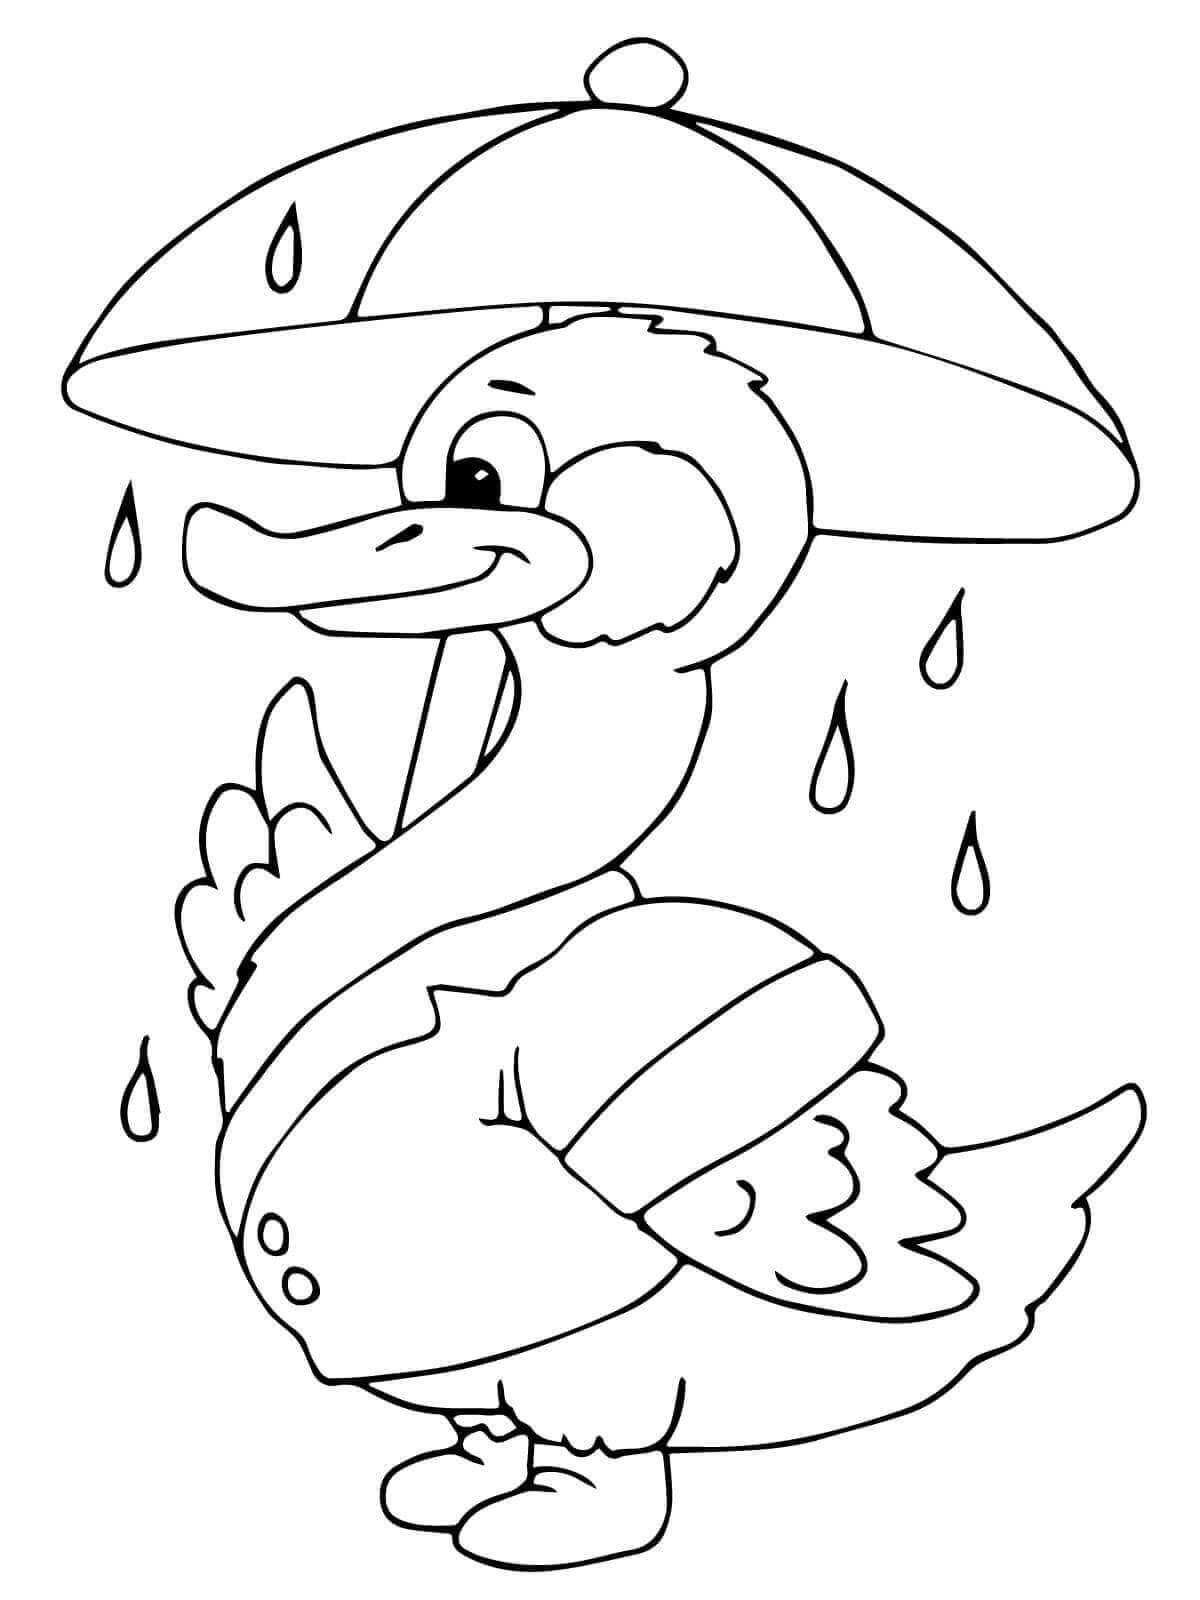 Duck with an umbrella